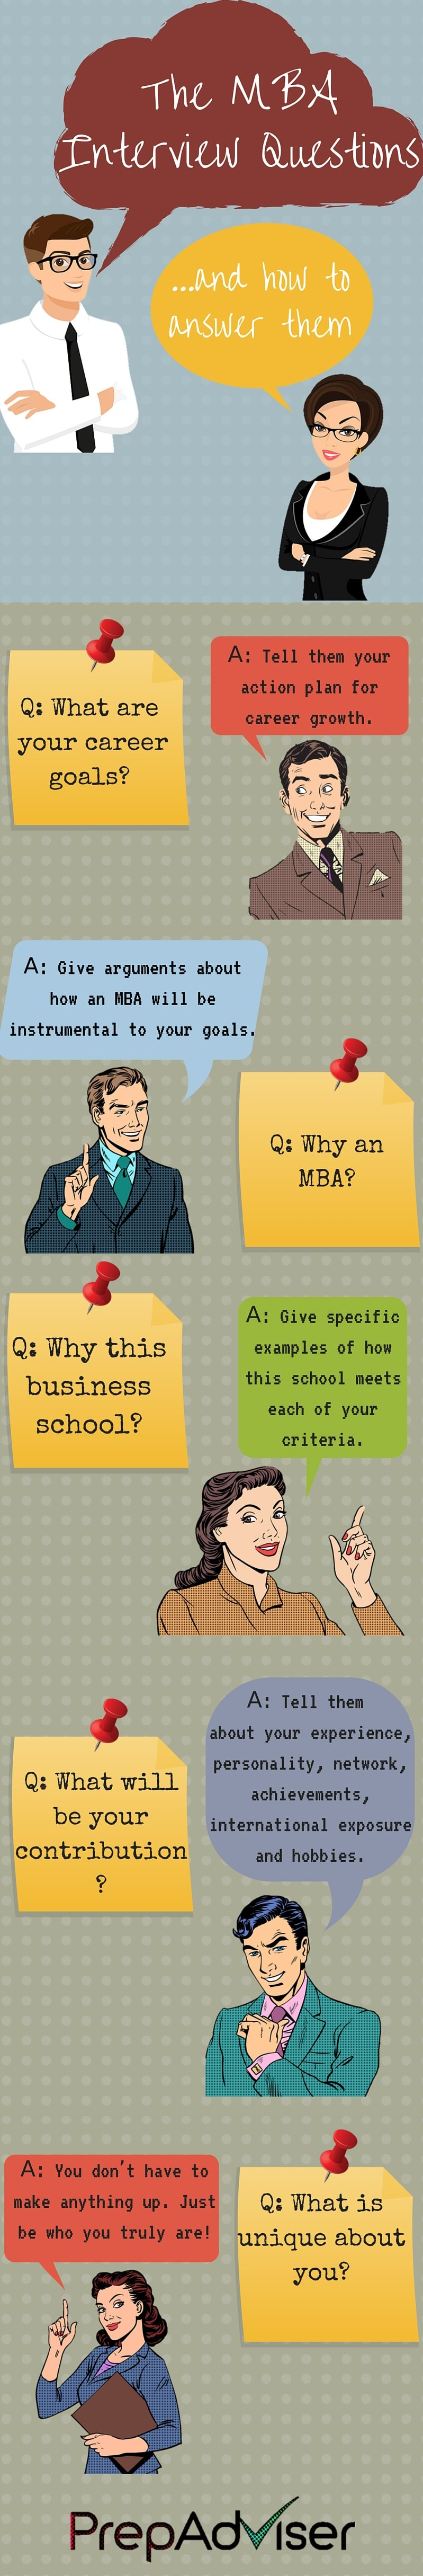 Master These MBA Interview Questions PrepAdviser Infographic